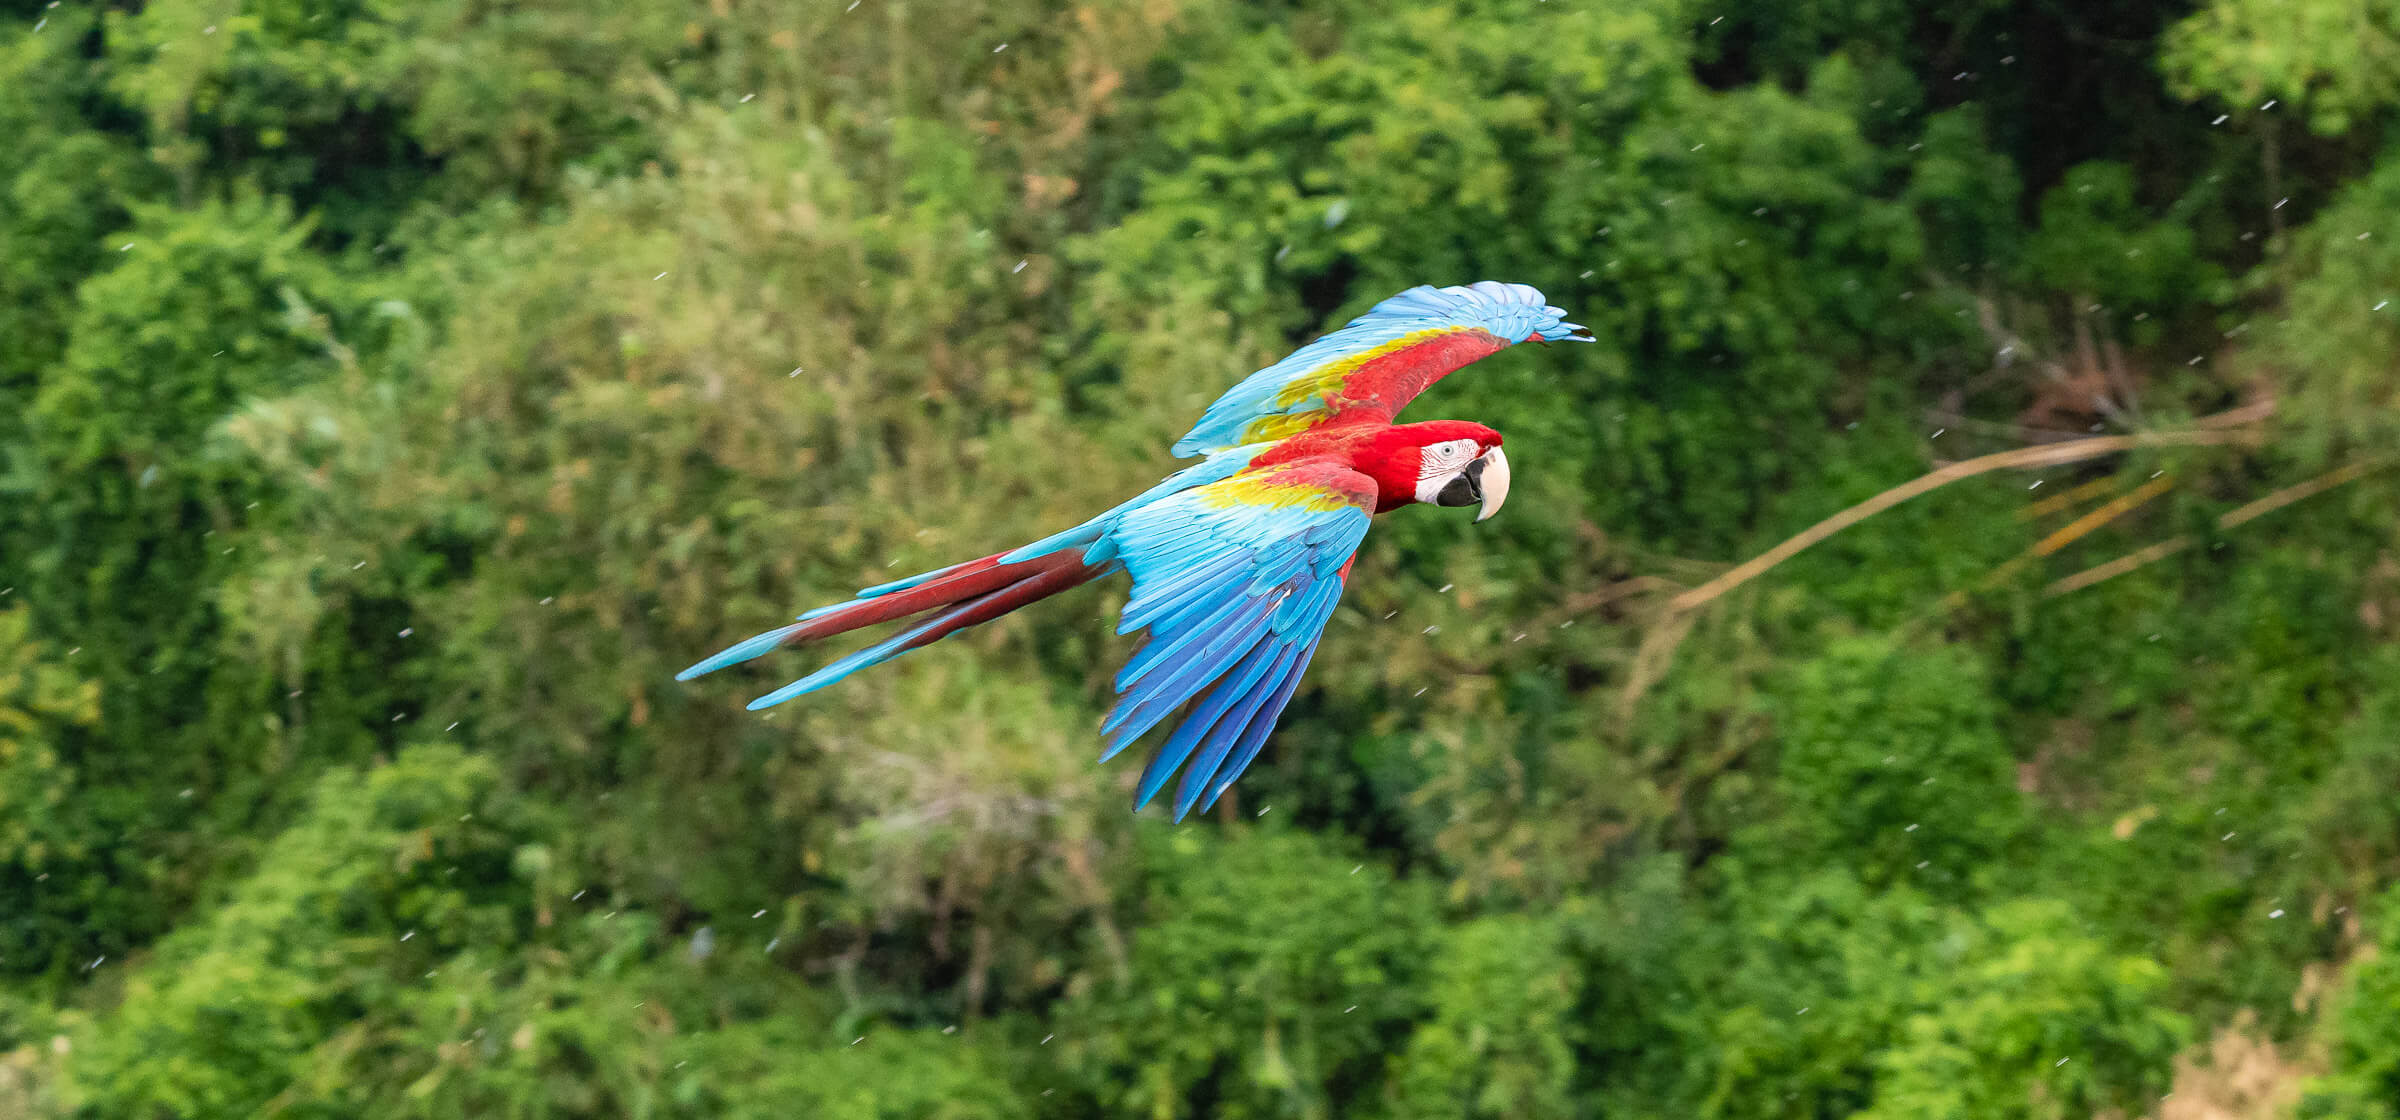 Macaw Parrot in Flight, Henderson Waves, Singapore